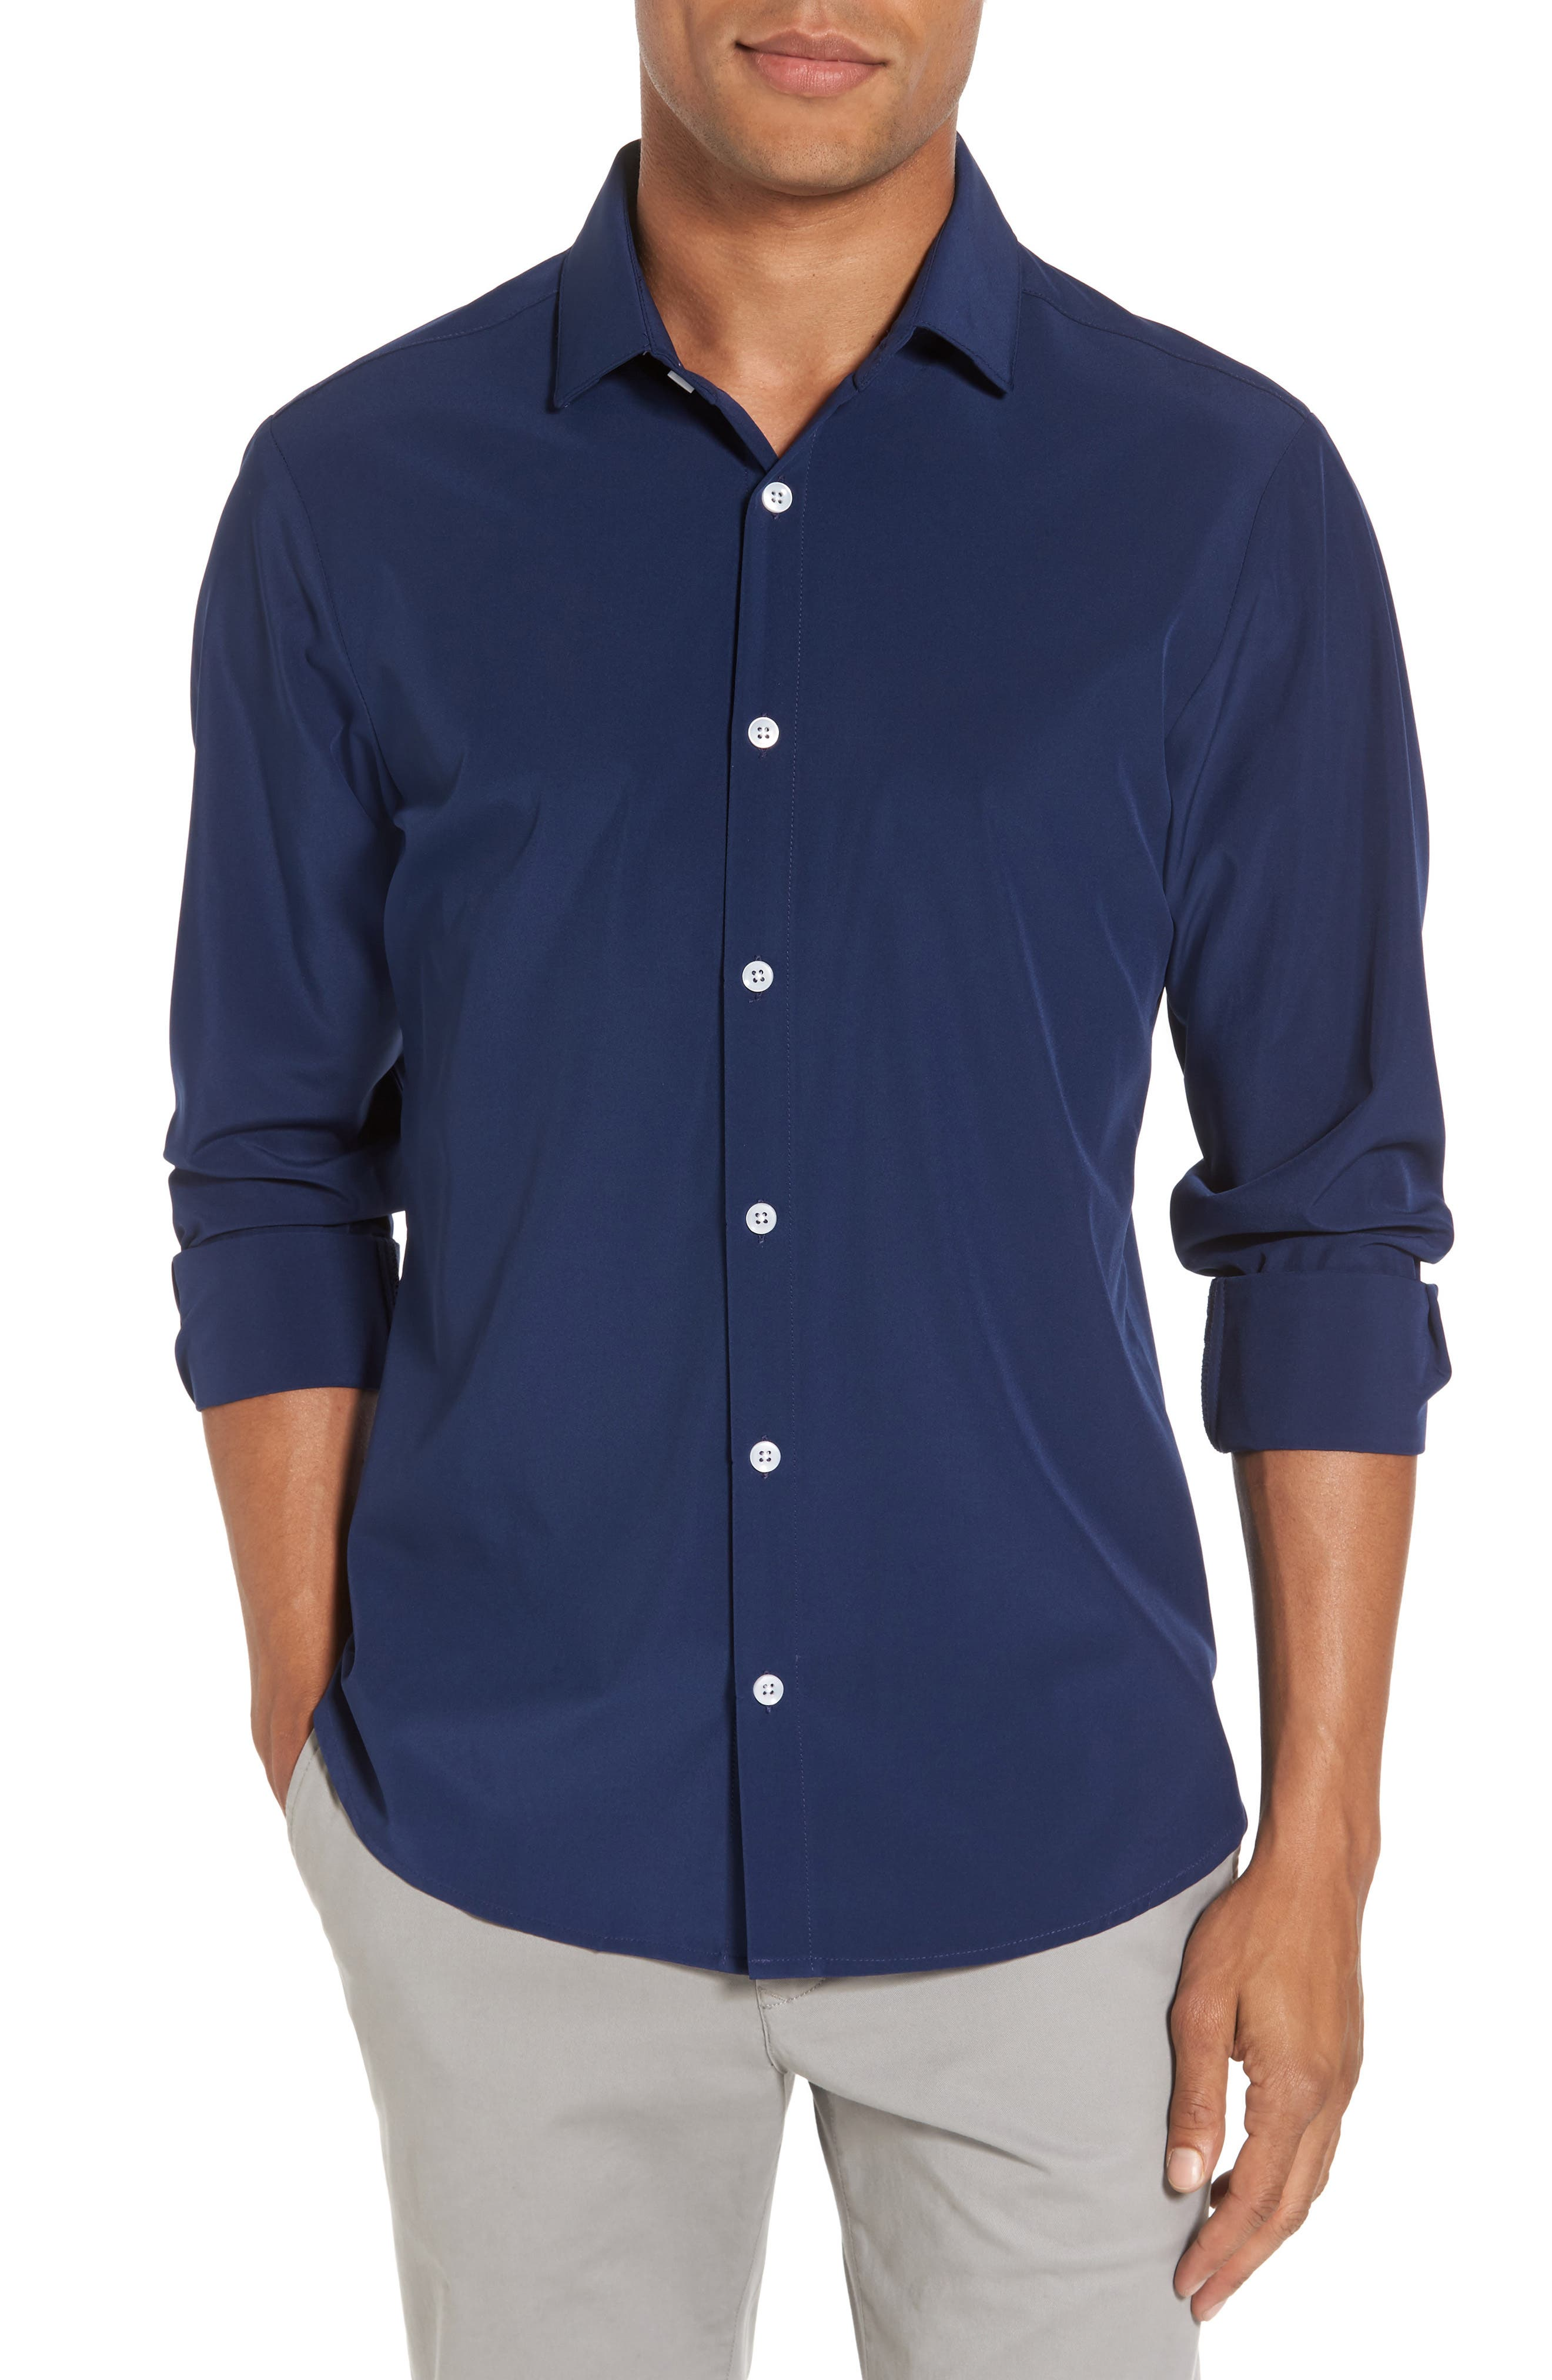 Alternate Image 1 Selected - Mizzen+Main Dillon Slim Fit Performance Sport Shirt (Tall)